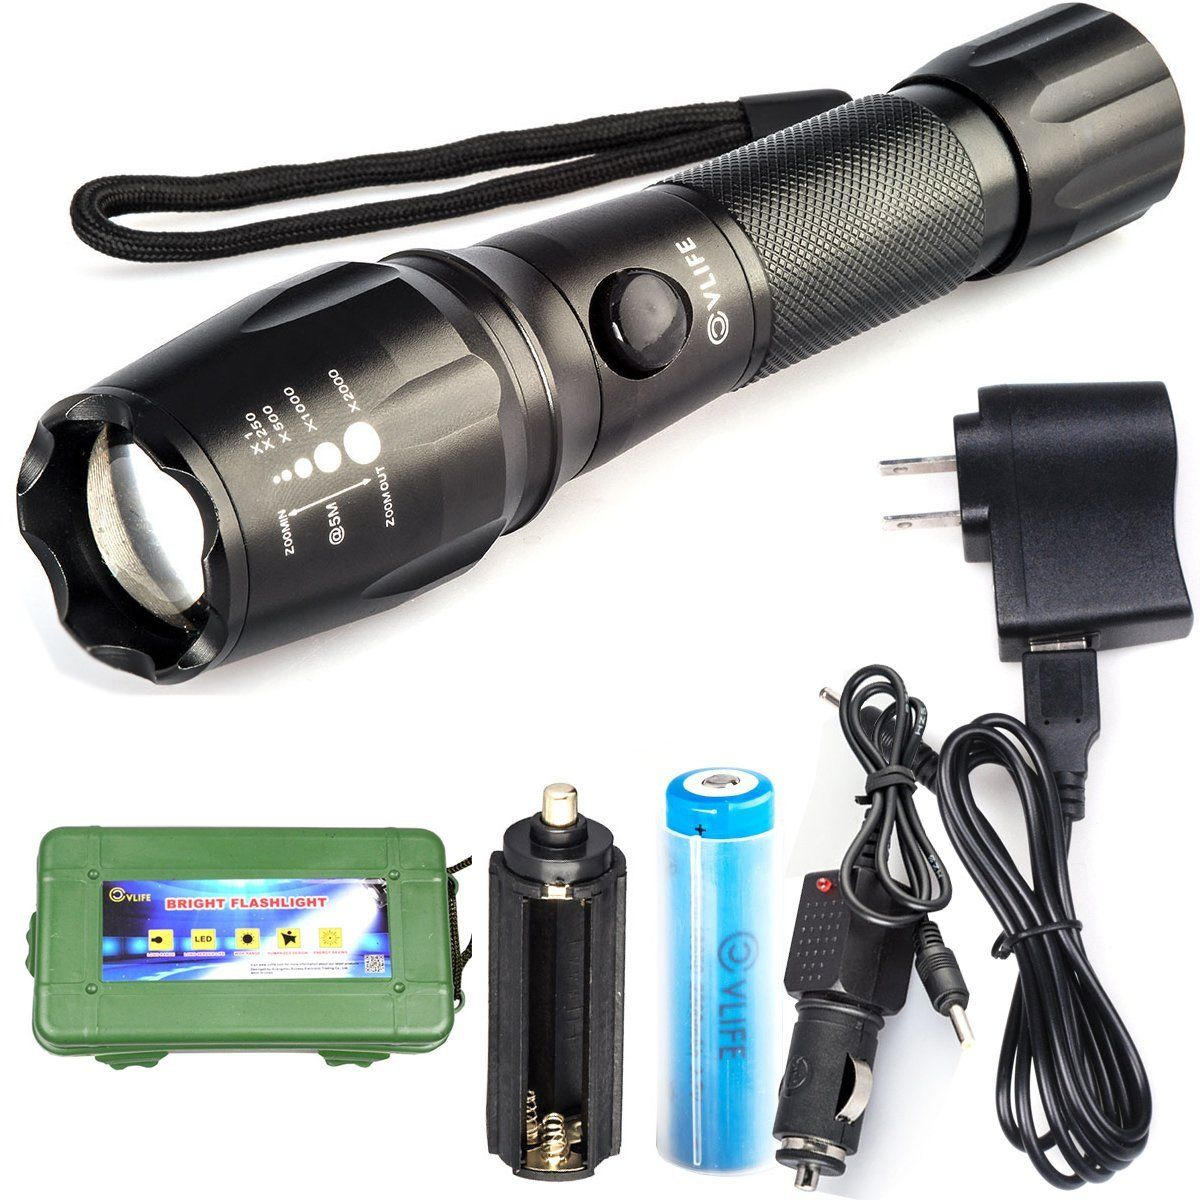 CVLIFE 800LM XML T6 LED Flashlight Rechargeable Torch 5 Modes with 18650 Battery 2 Chargers